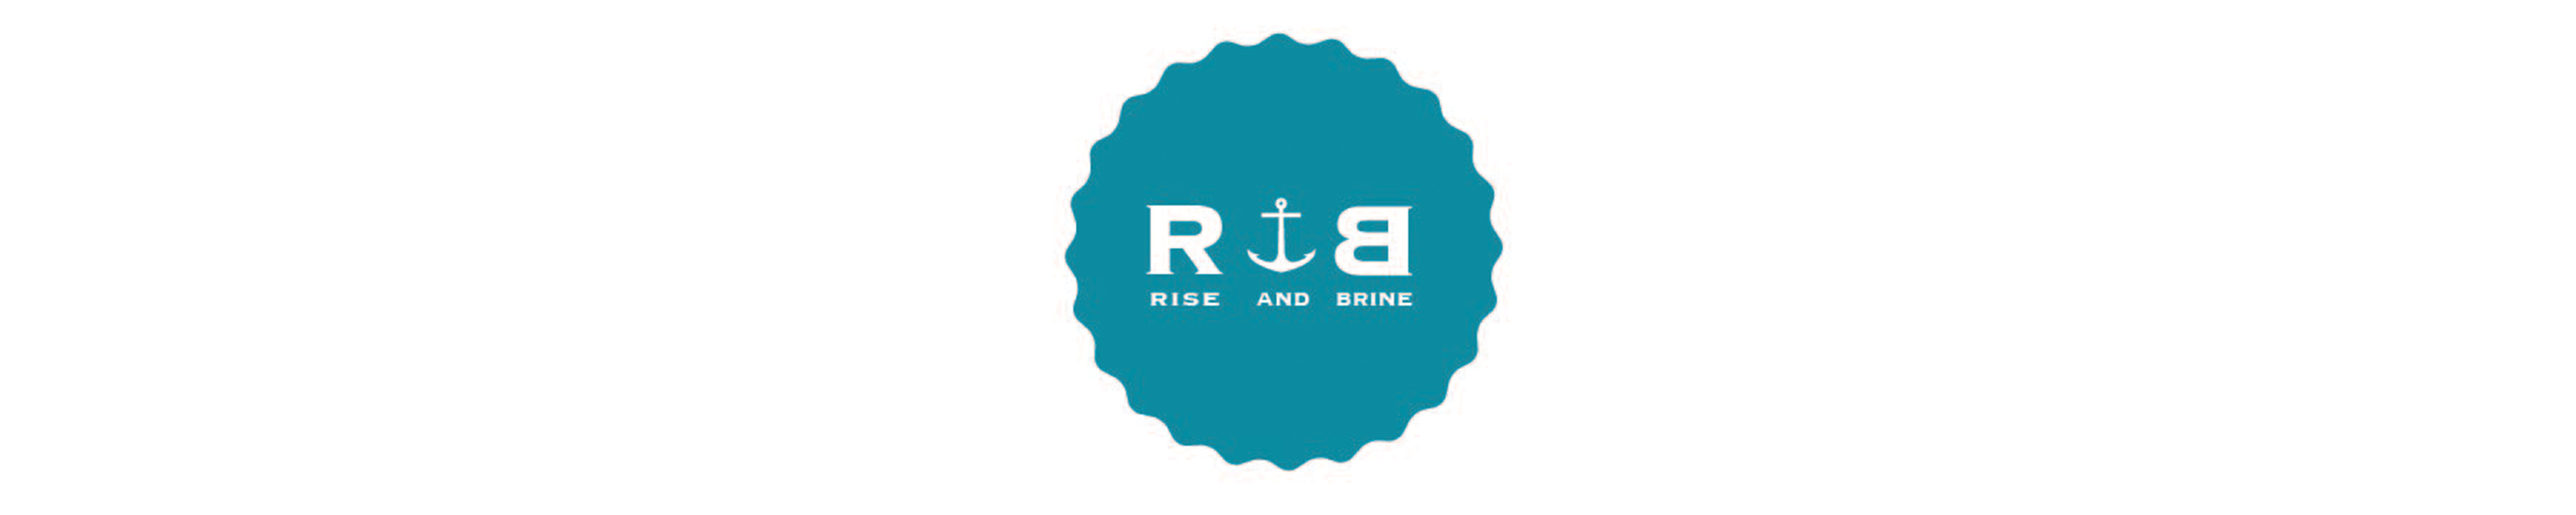 rise and brine banner